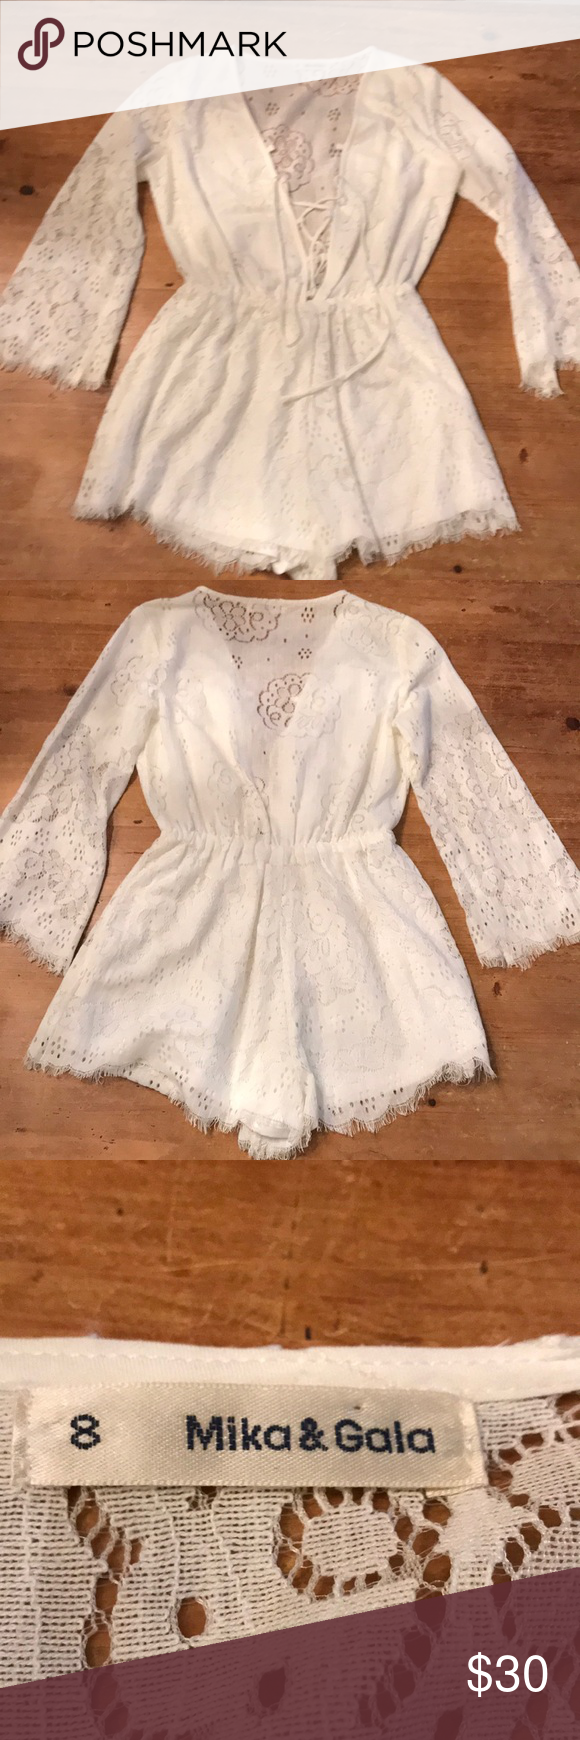 4962b89a838 LF  Mika   Gala lace romper Gorgeous white lace romper from LF. Lace up in  the front. Bell sleeves and elastic waist. Size 8   medium. Never worn!!